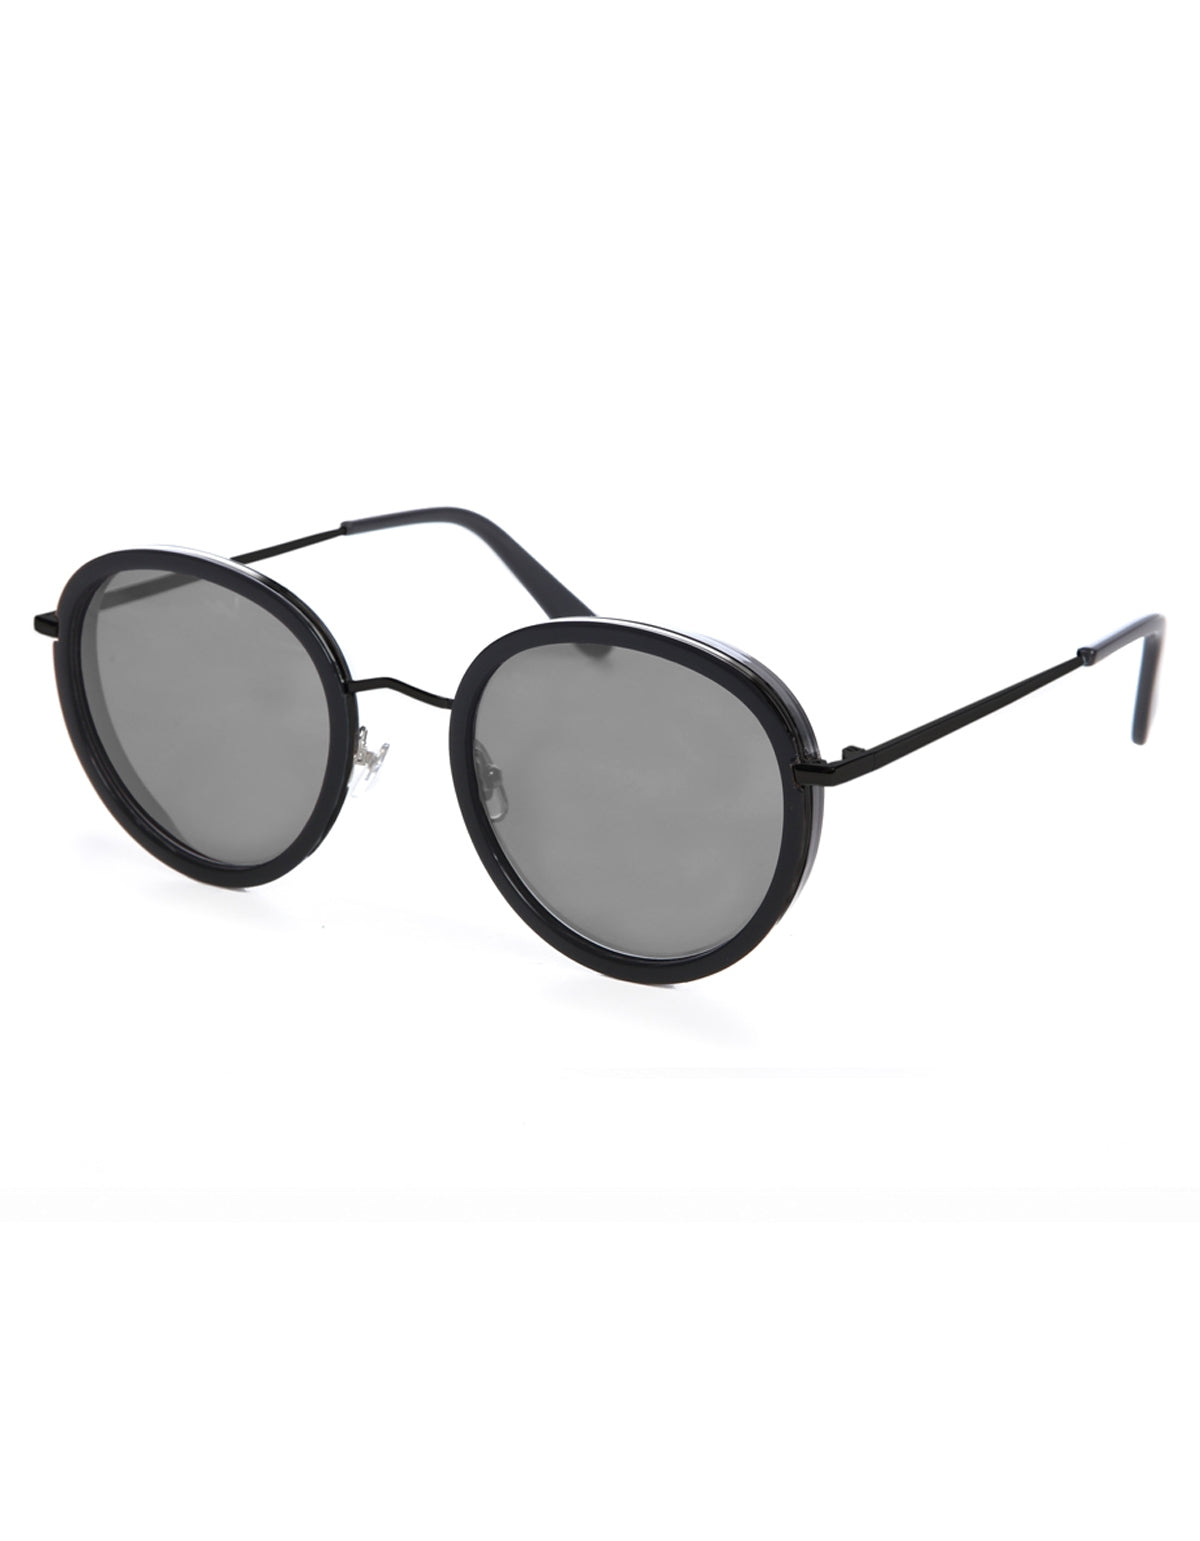 Wonderland Montclair Sunglasses Gloss Black Gray Carl Zeiss